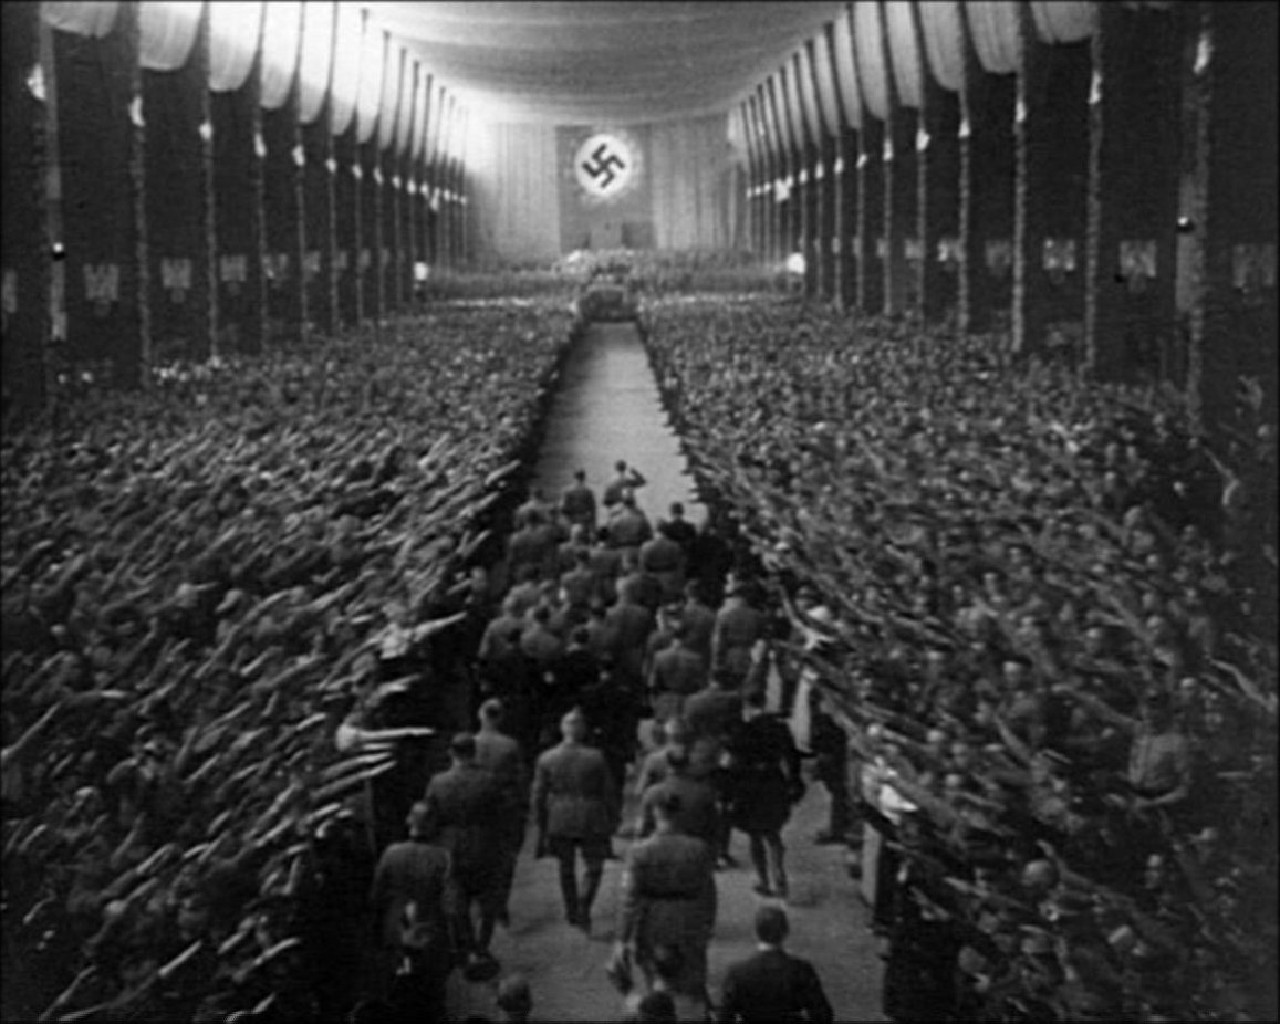 an analysis of the rise of the nazi party in germany from 1933 to 1943 German propaganda posters from the 20th solution of all germany's woes of the time, the nazi party grew 1943 did widespread bombing of germany.